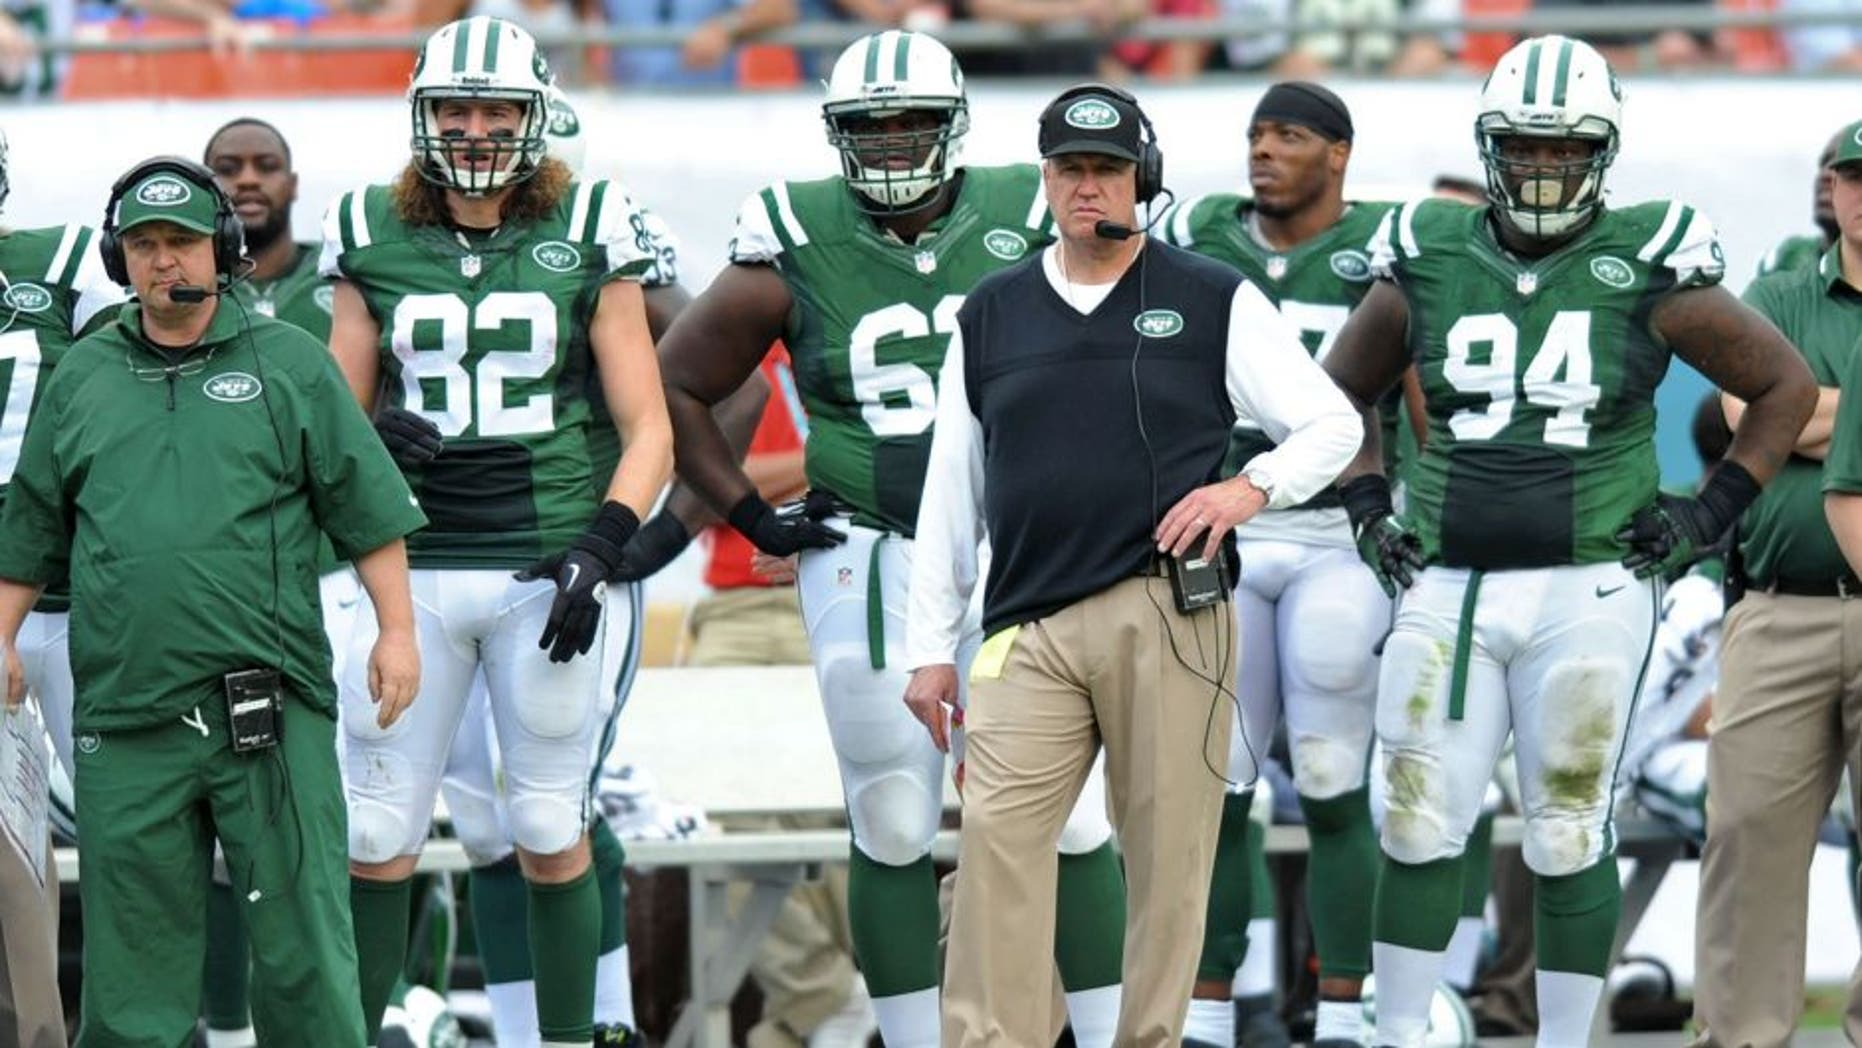 Dec 29, 2013; Miami Gardens, FL, USA; New York Jets head coach Rex Ryan looks on from the sideline during the first half against the Miami Dolphins at Sun Life Stadium. Mandatory Credit: Steve Mitchell-USA TODAY Sports